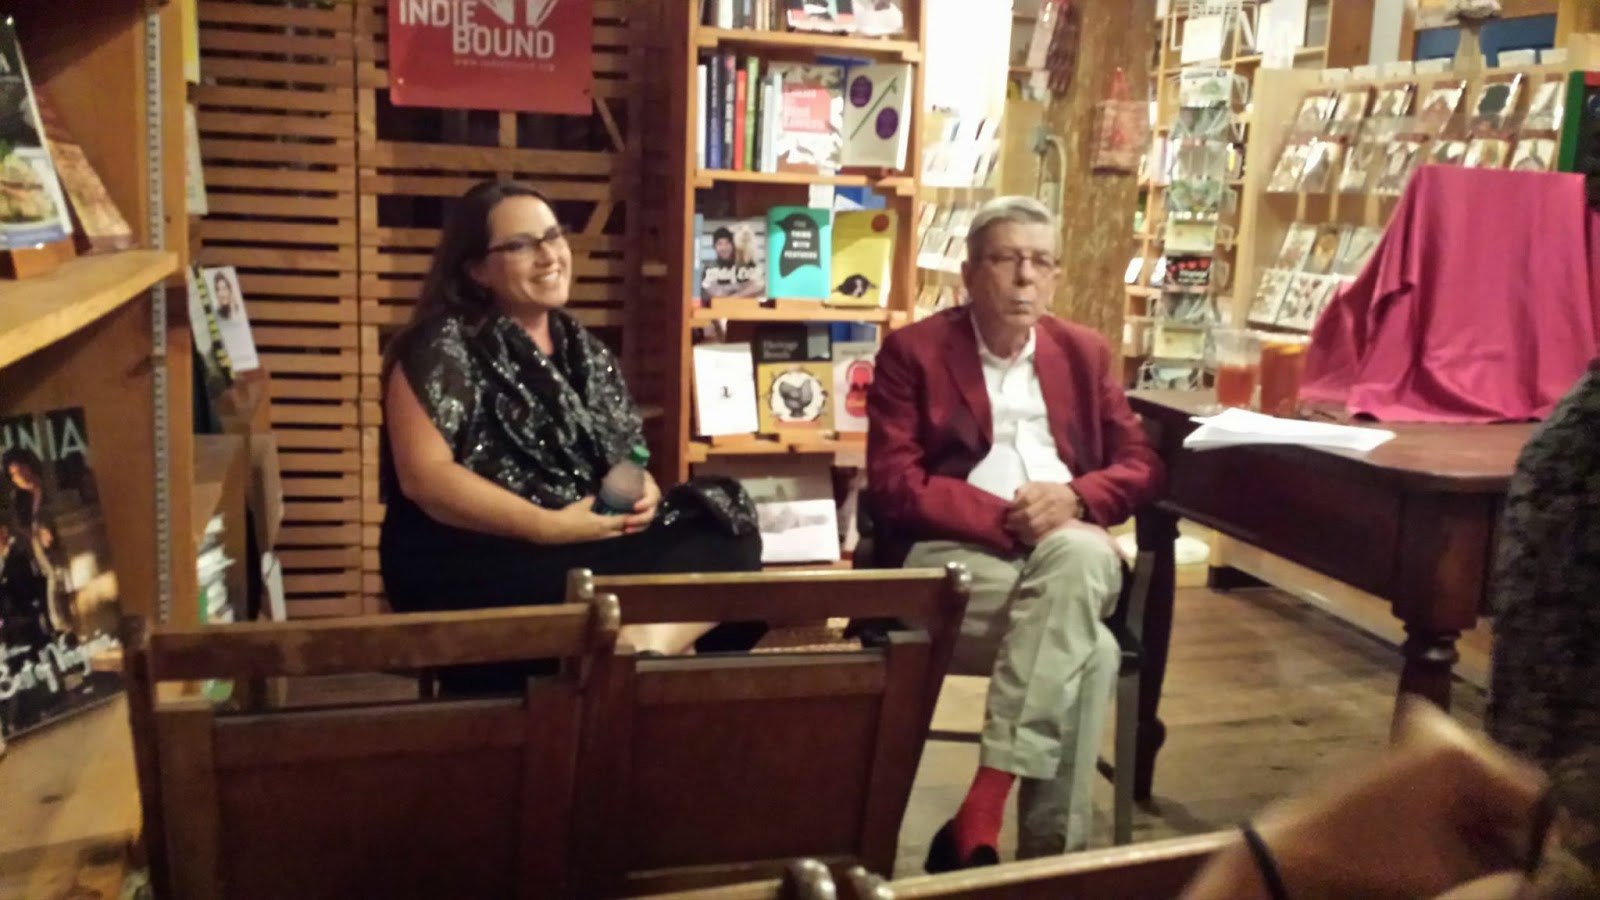 Amazingly, Robert Goolrick, Bestselling Author Of A Reliable Wife And  Heading Out To Wonderful, Joined Me For The Evening, And Read From His  Brand New Novel